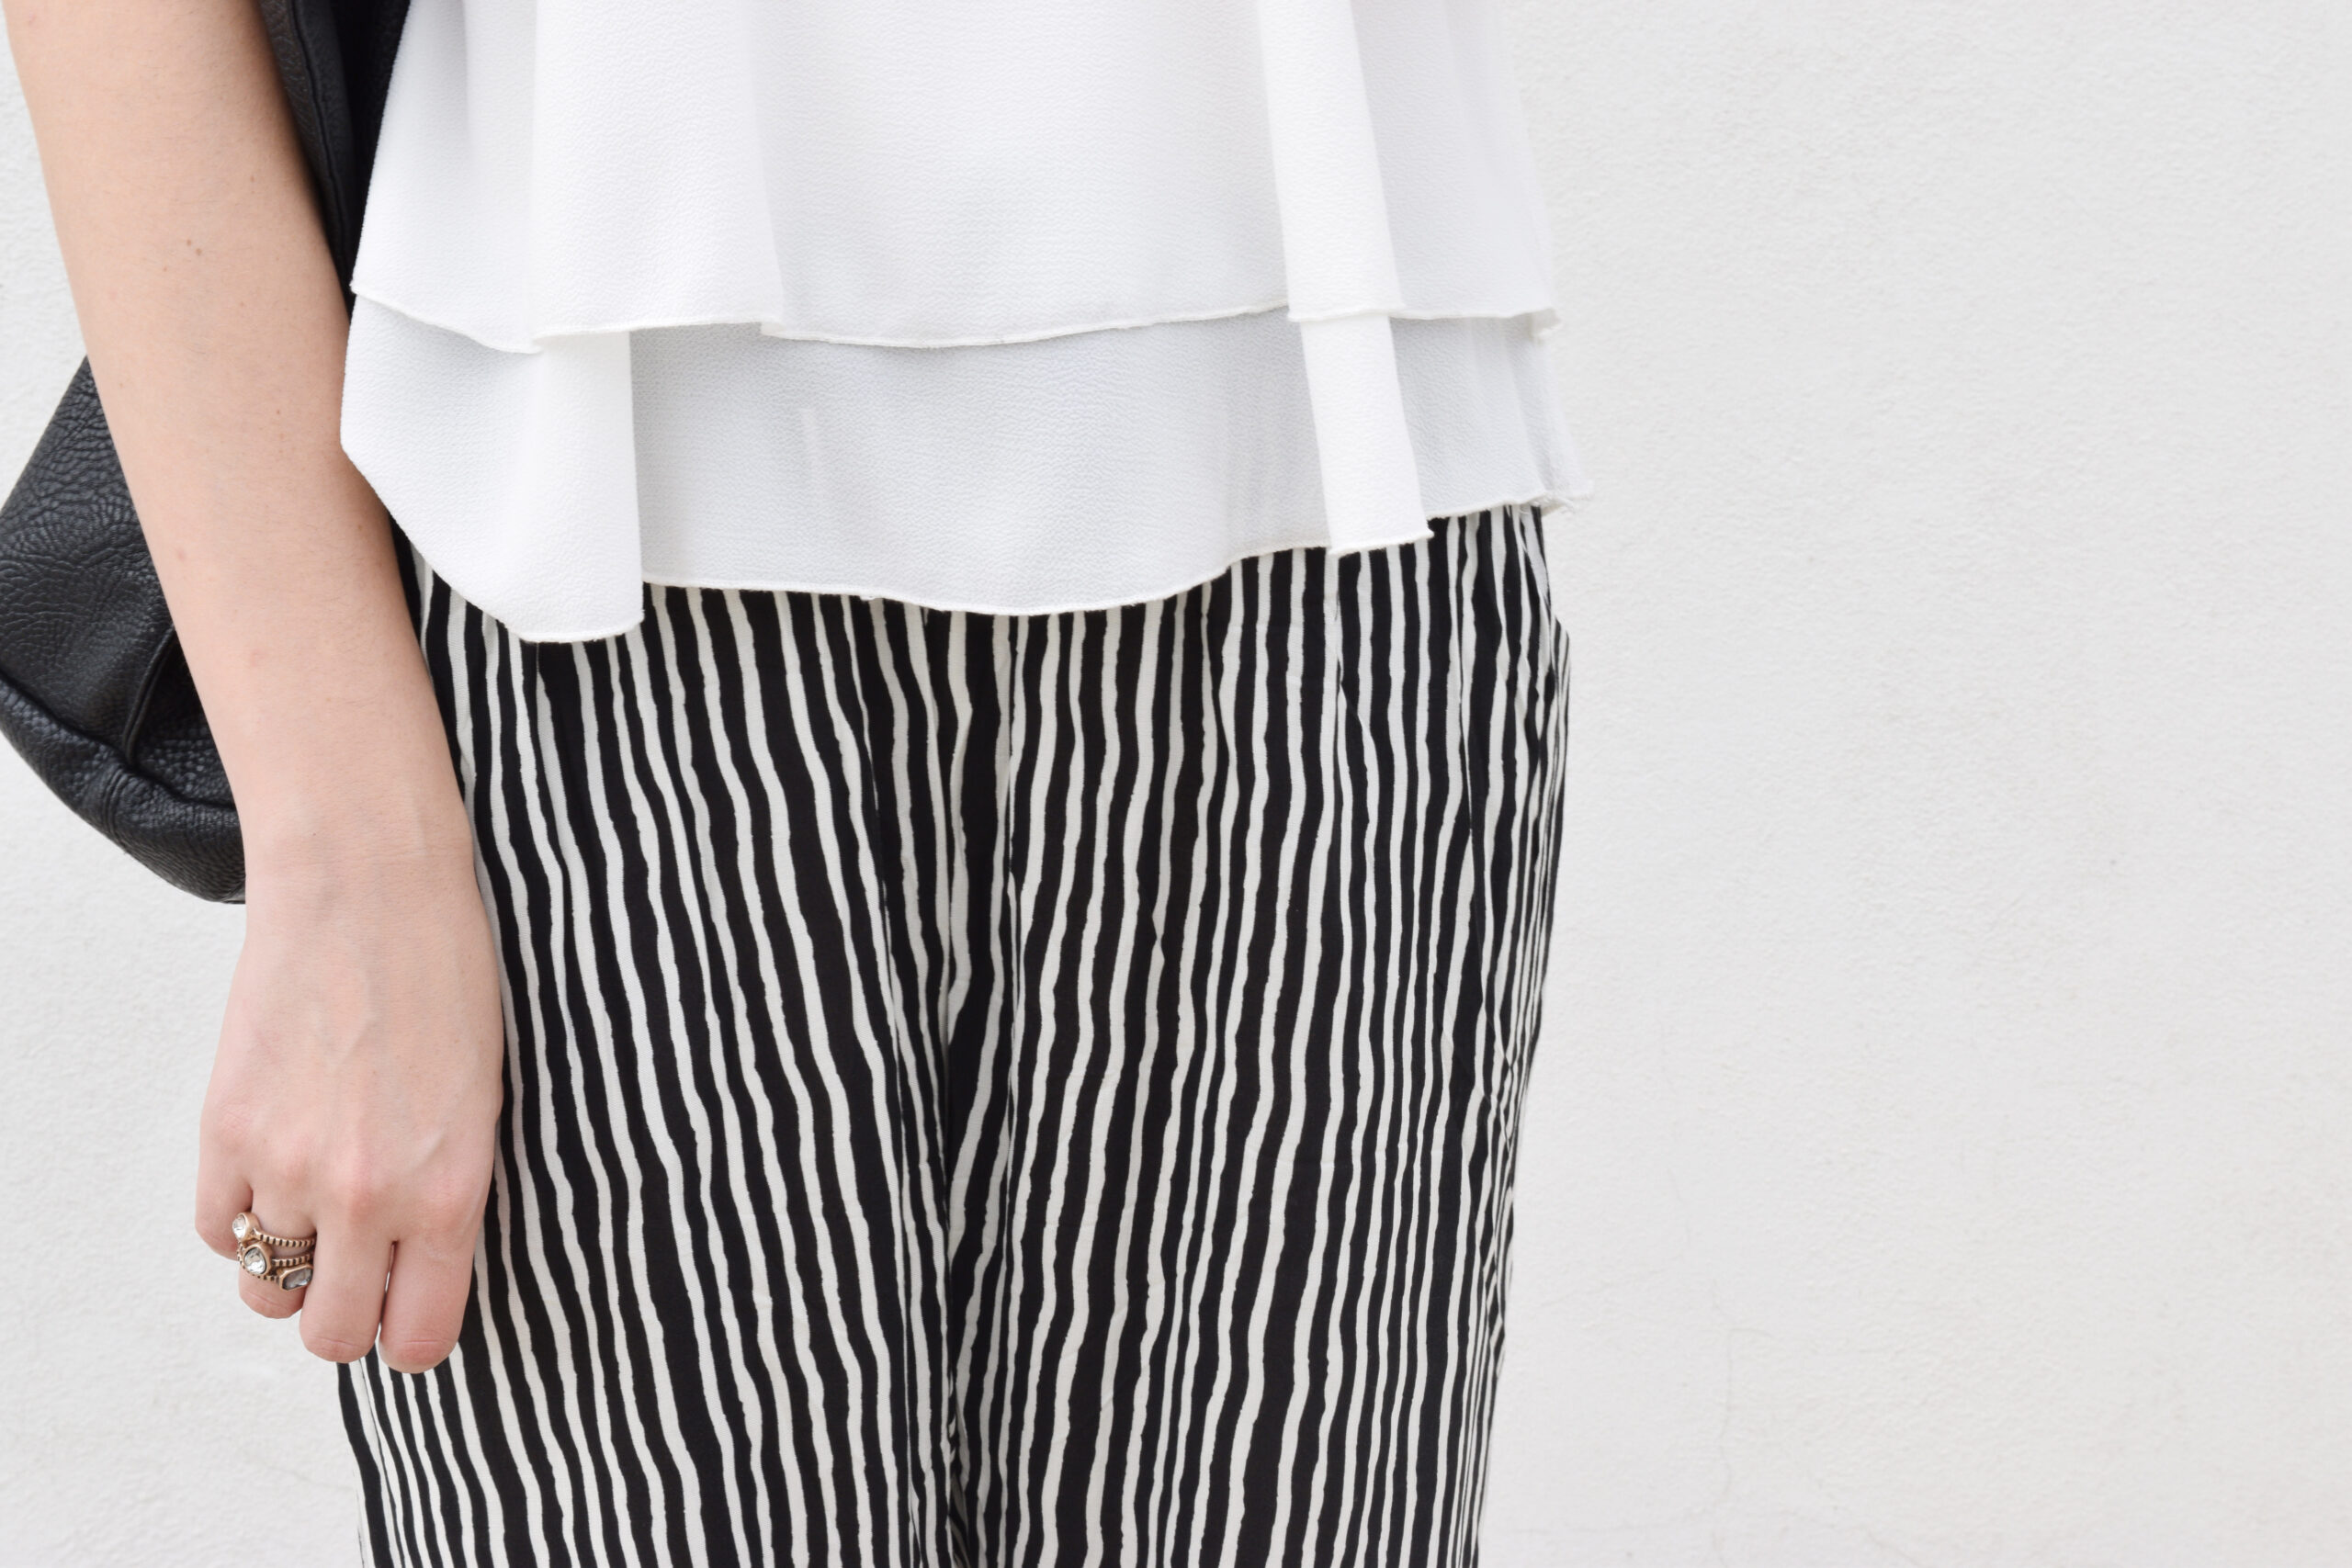 daniela soriano, outfit, printed pajama pants, pj pants, inspired, black and white outfits, cut out heels, white top, minimal look,